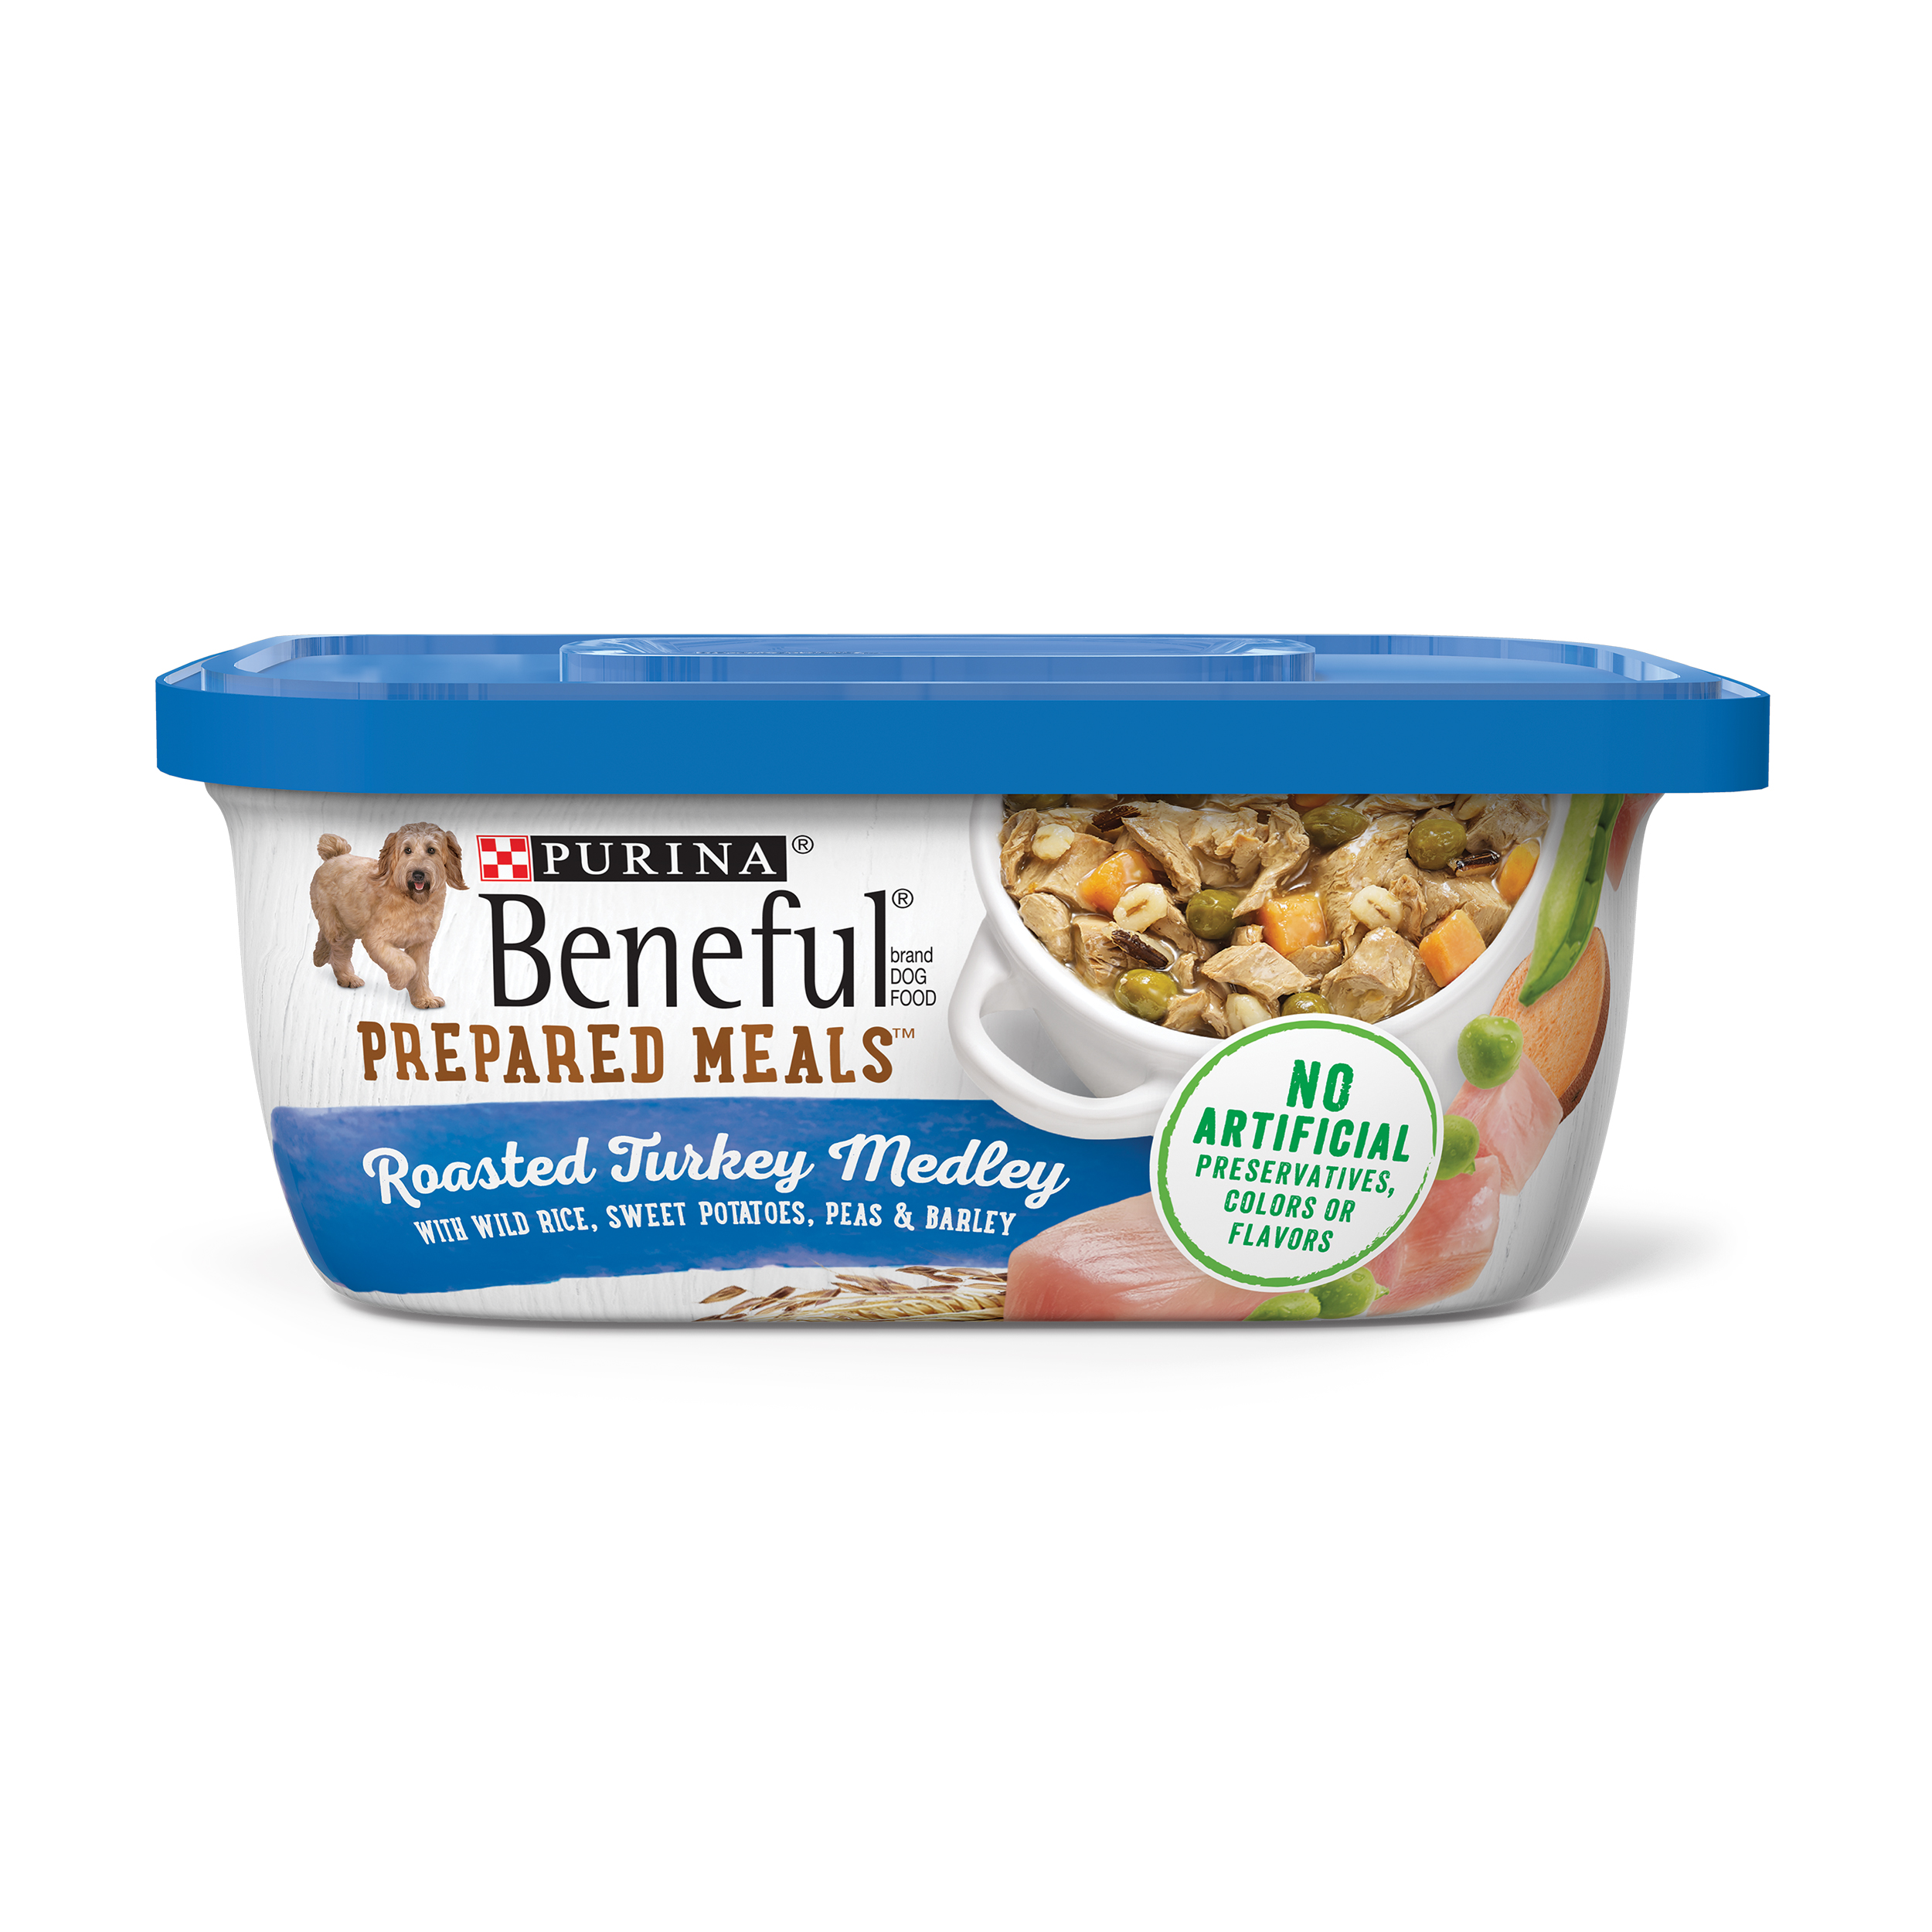 Purina Beneful Prepared Meals Roasted Turkey Medley With Wild Rice, Sweet Potatoes, Peas & Barley Adult Wet Dog Food - 10 oz. Tub